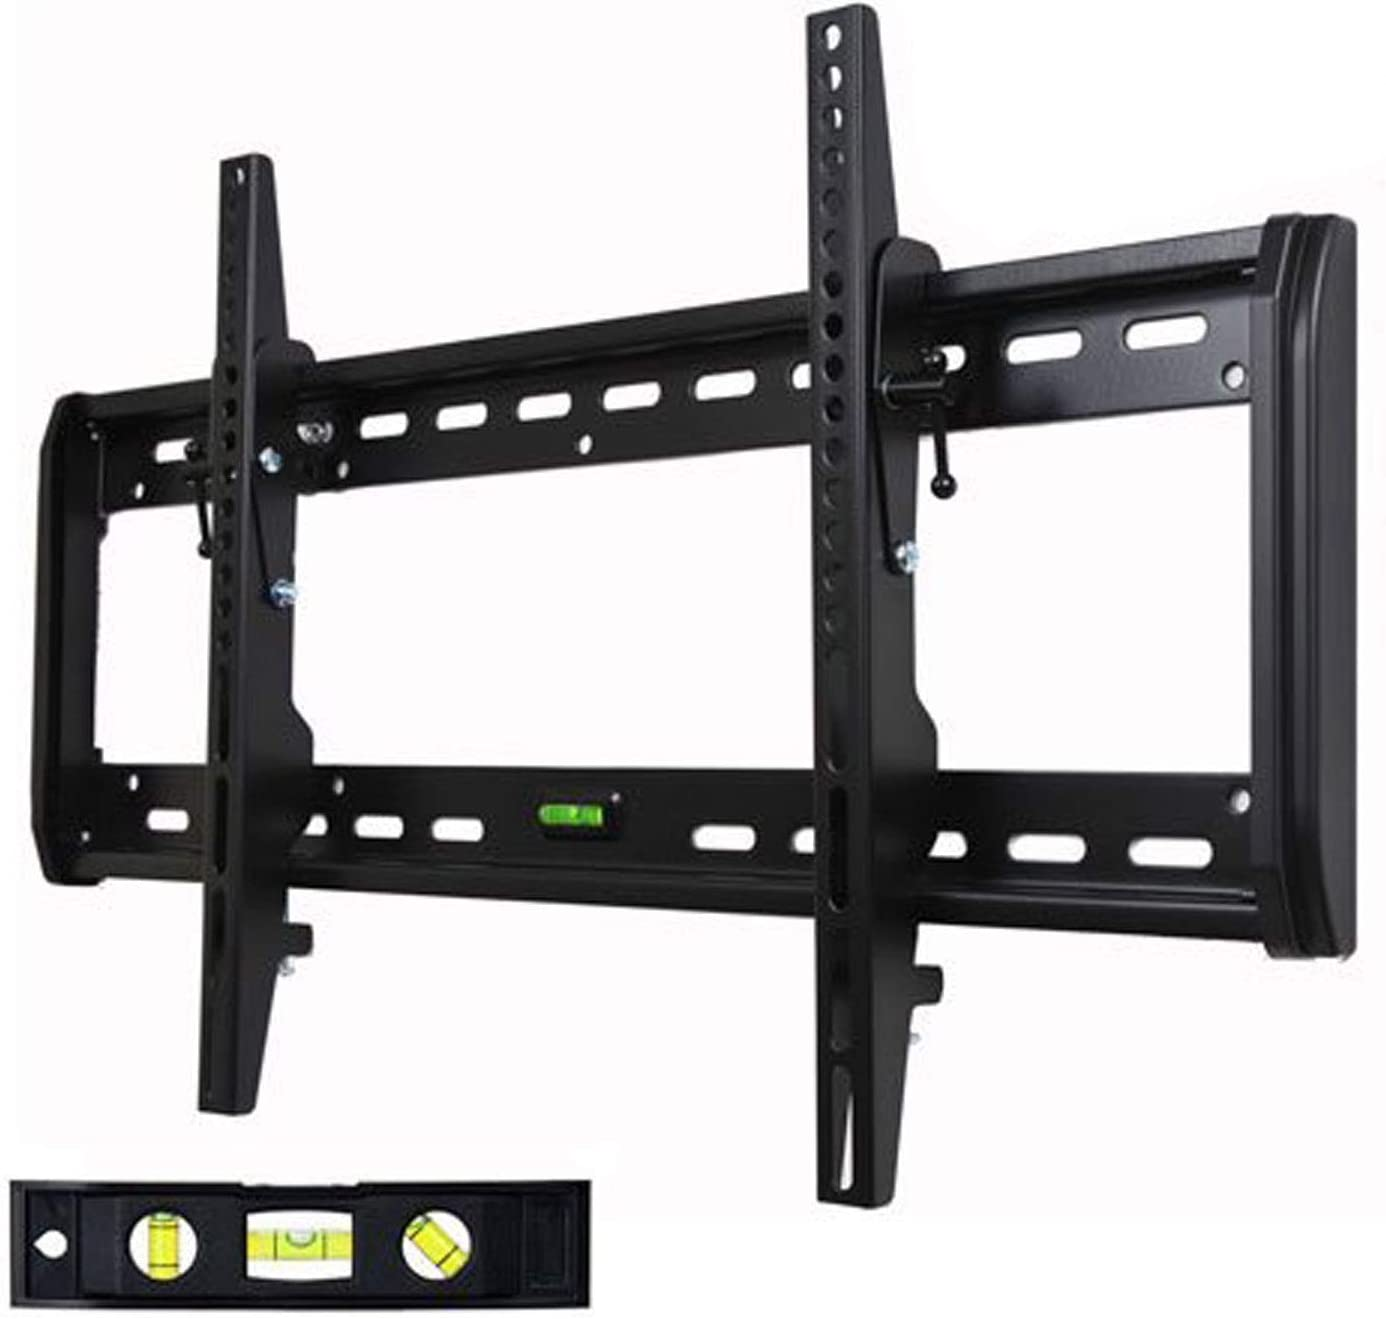 VideoSecu Tilting TV Wall Mount Bracket for 32 to 75 Inch TV Display with VESA 600x400mm BXG